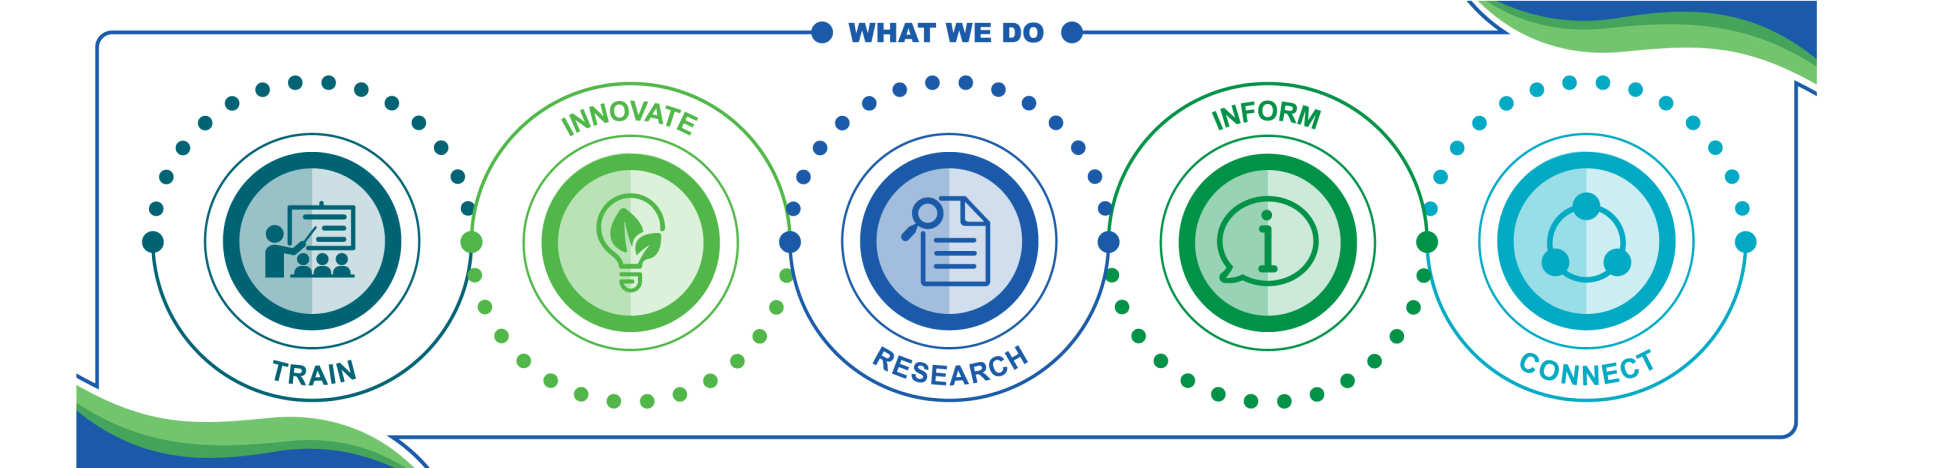 Graphic with icons showing core parts of our work - Train, Innovate, Research, Inform, Connect